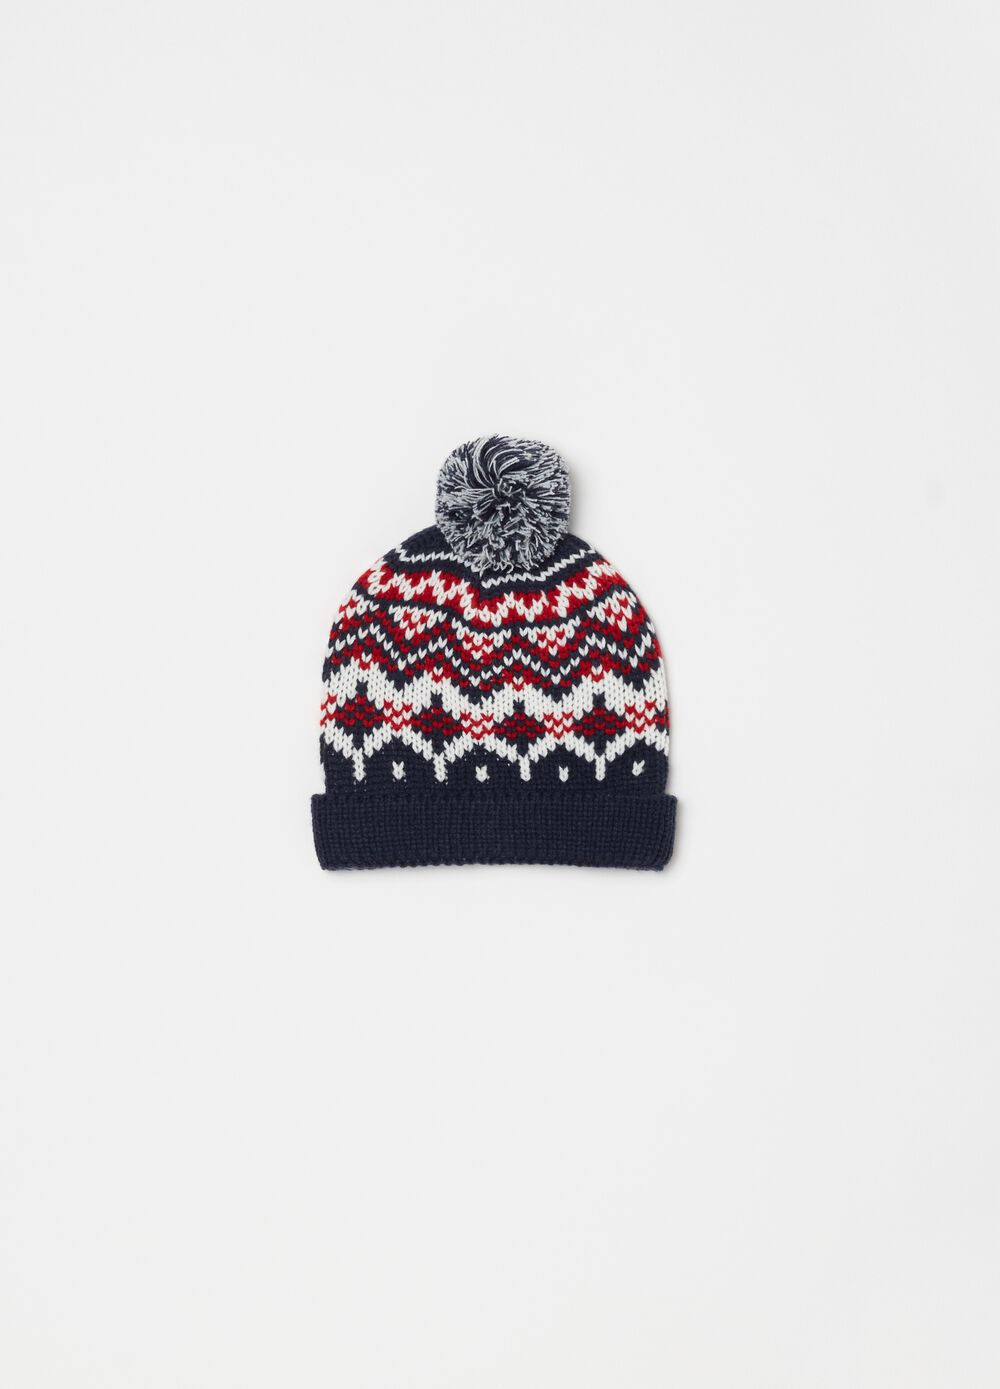 Knitted hat with jacquard weave